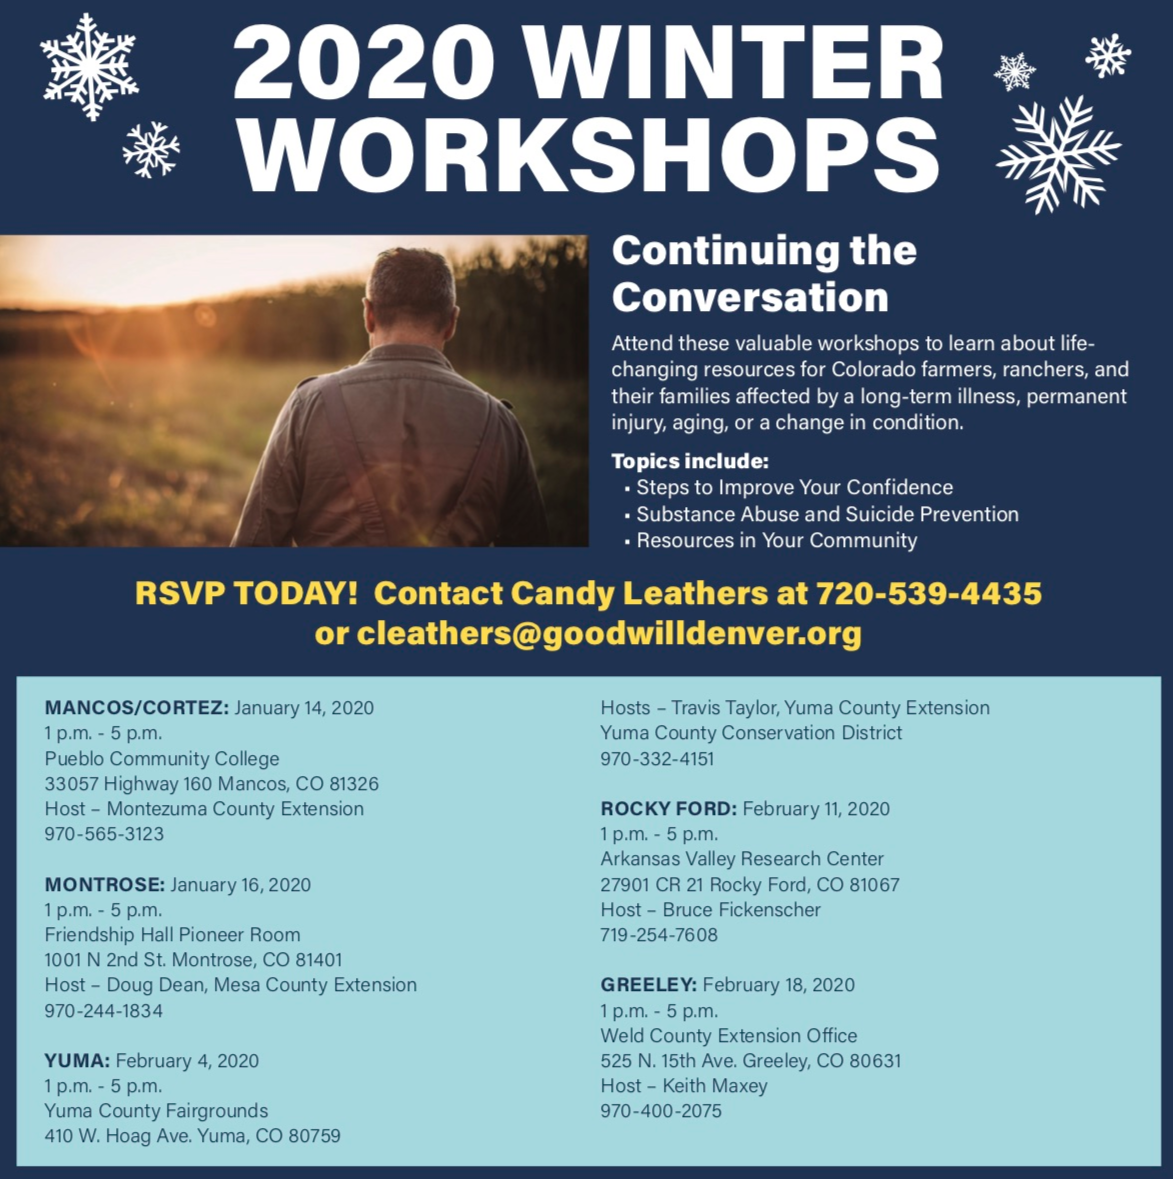 2020 Winter Workshops Poster